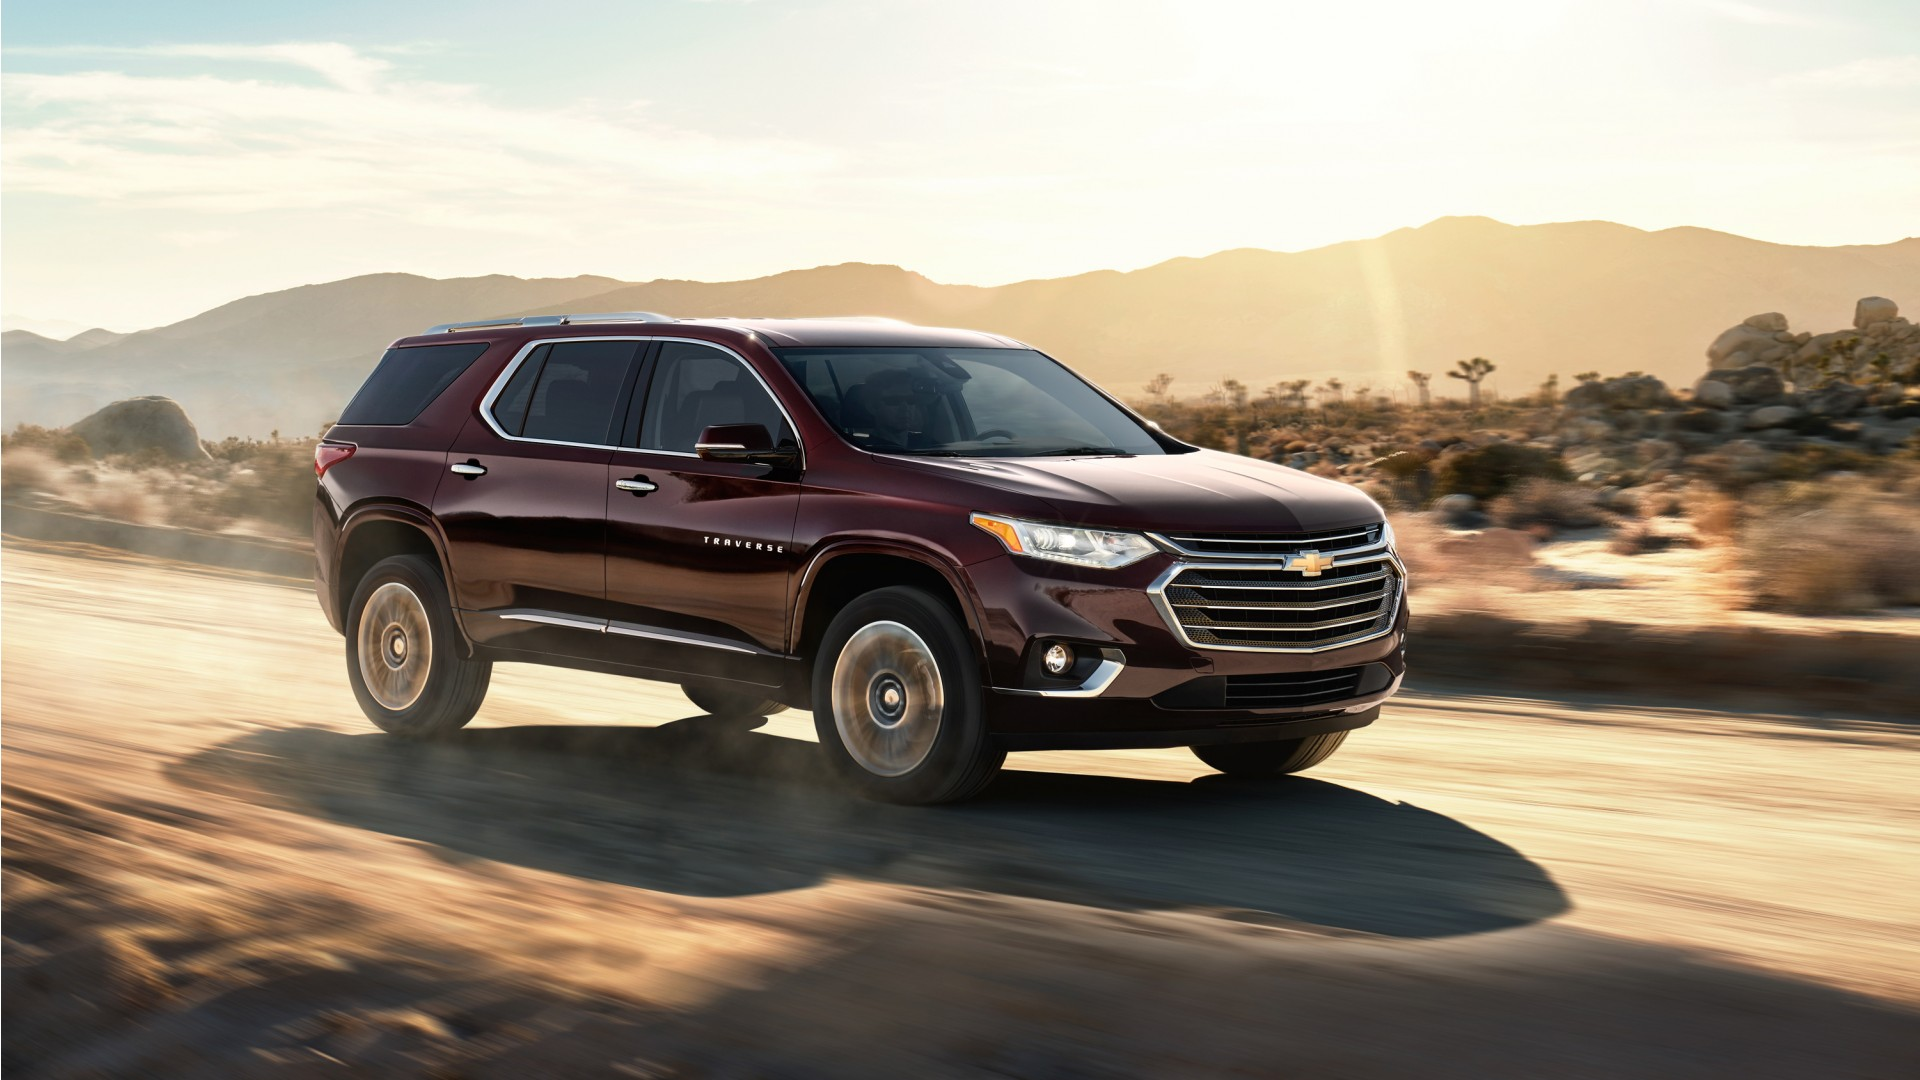 2018 Chevrolet Traverse Wallpaper | HD Car Wallpapers | ID #8064